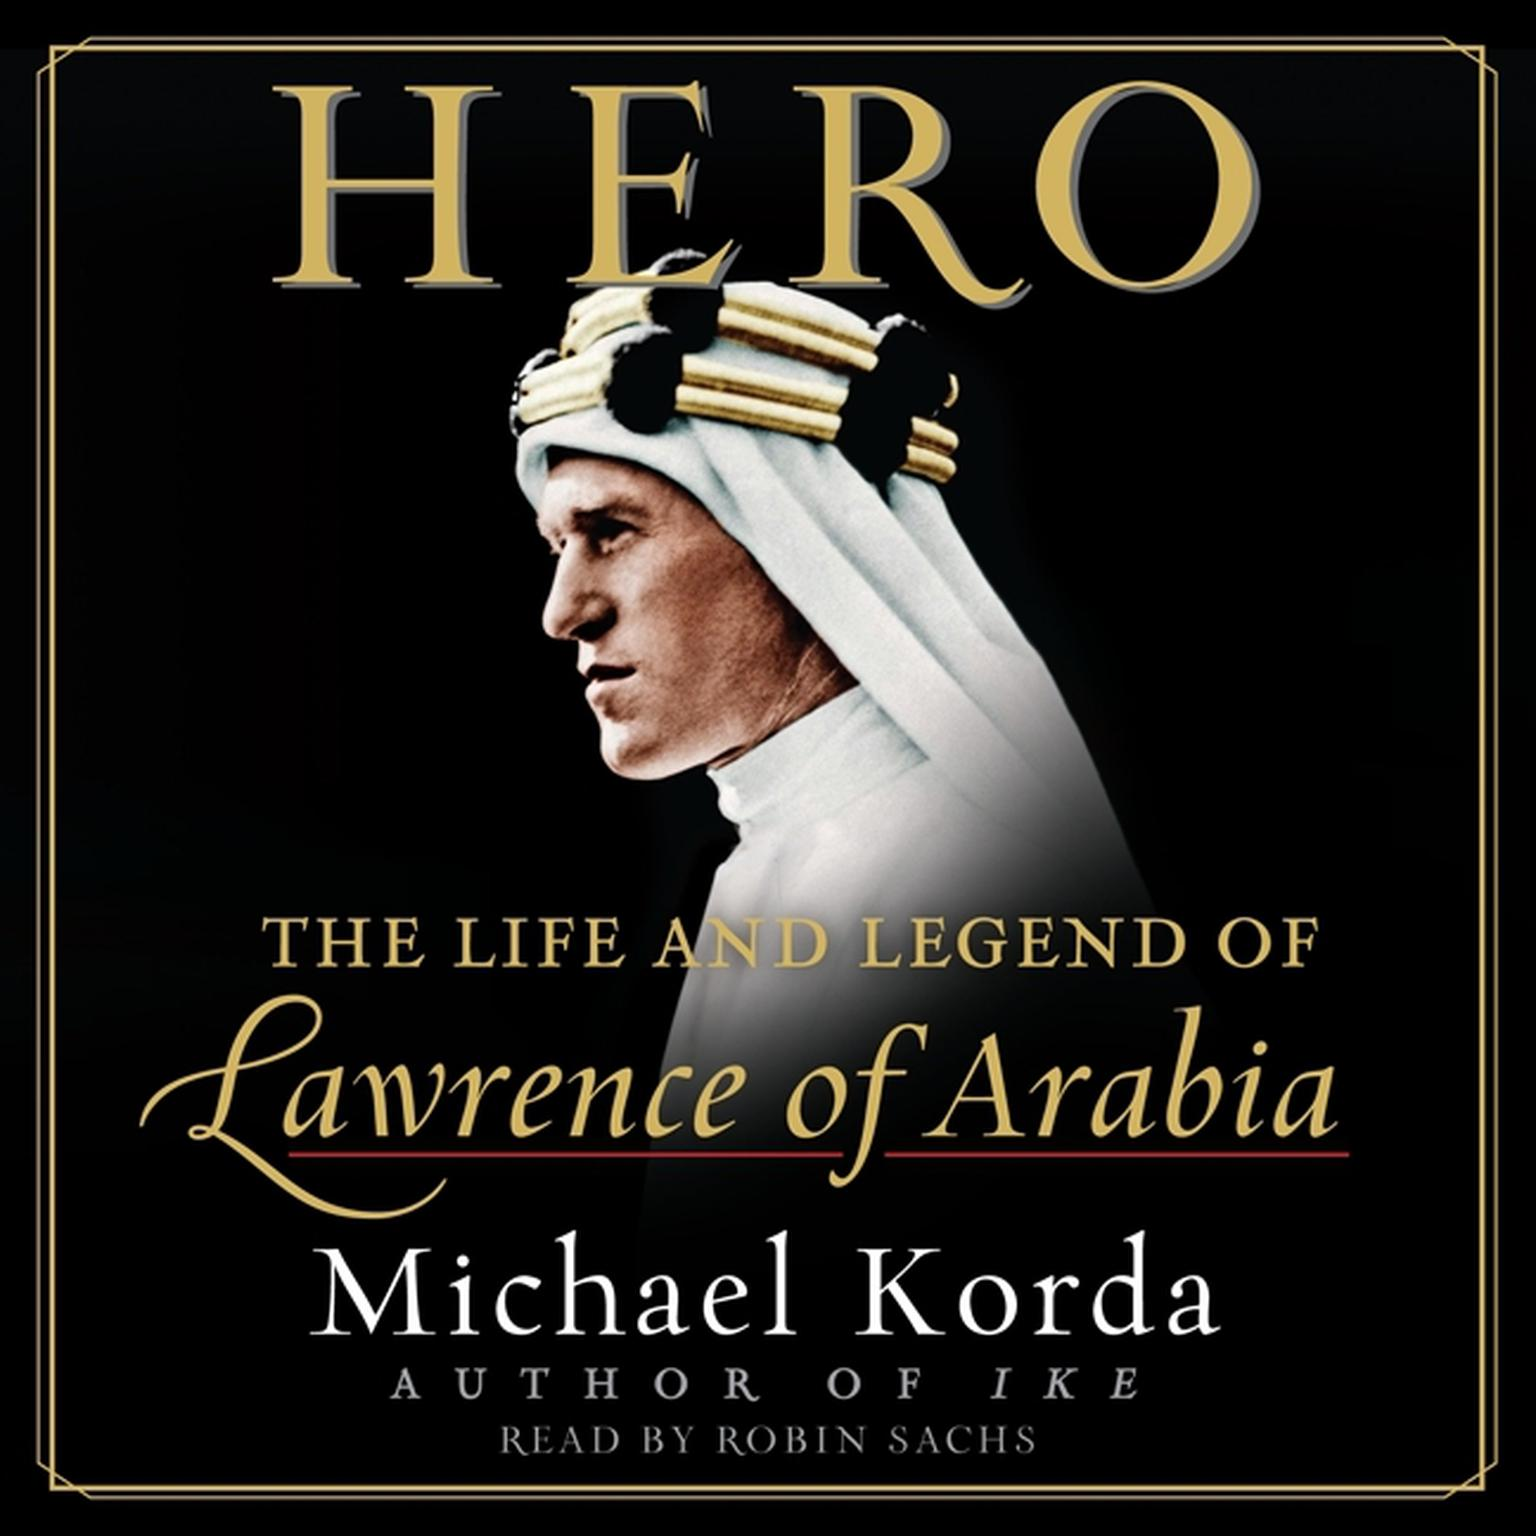 Printable Hero: The Life and Legend of Lawrence of Arabia Audiobook Cover Art